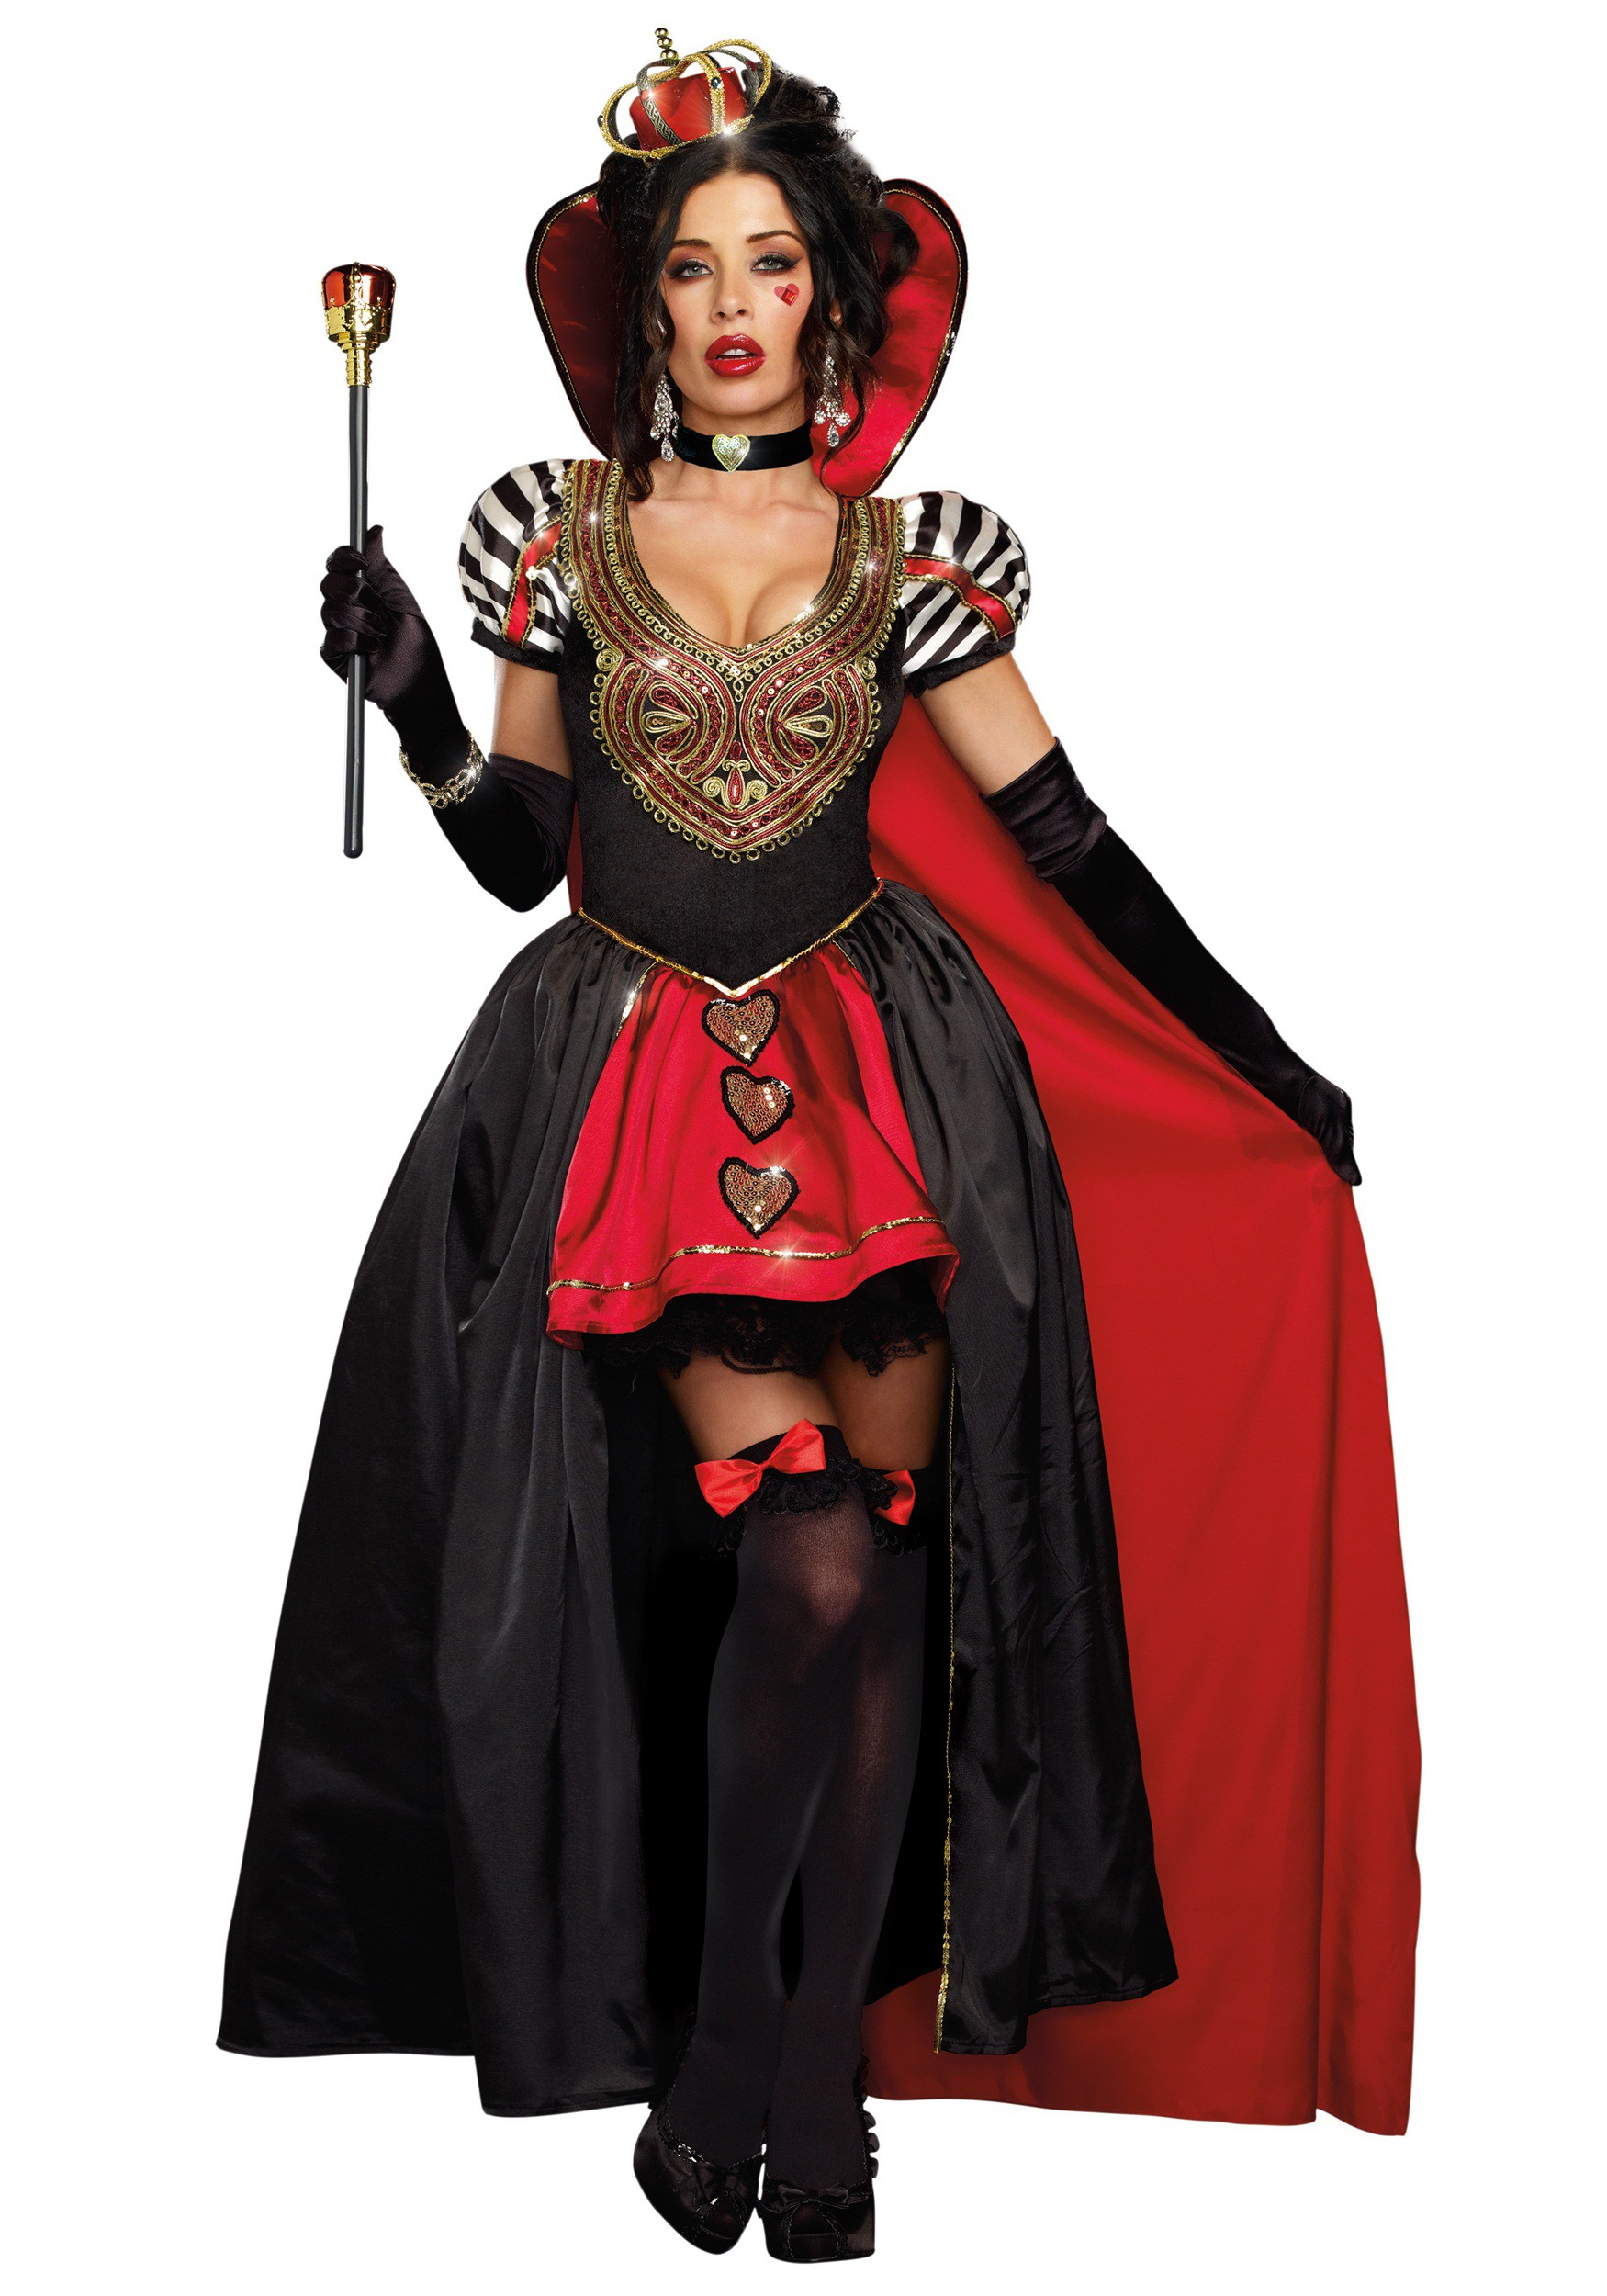 mode la plus désirable bons plans sur la mode style limité Queen of Hearts Adult Costume w/ Cape